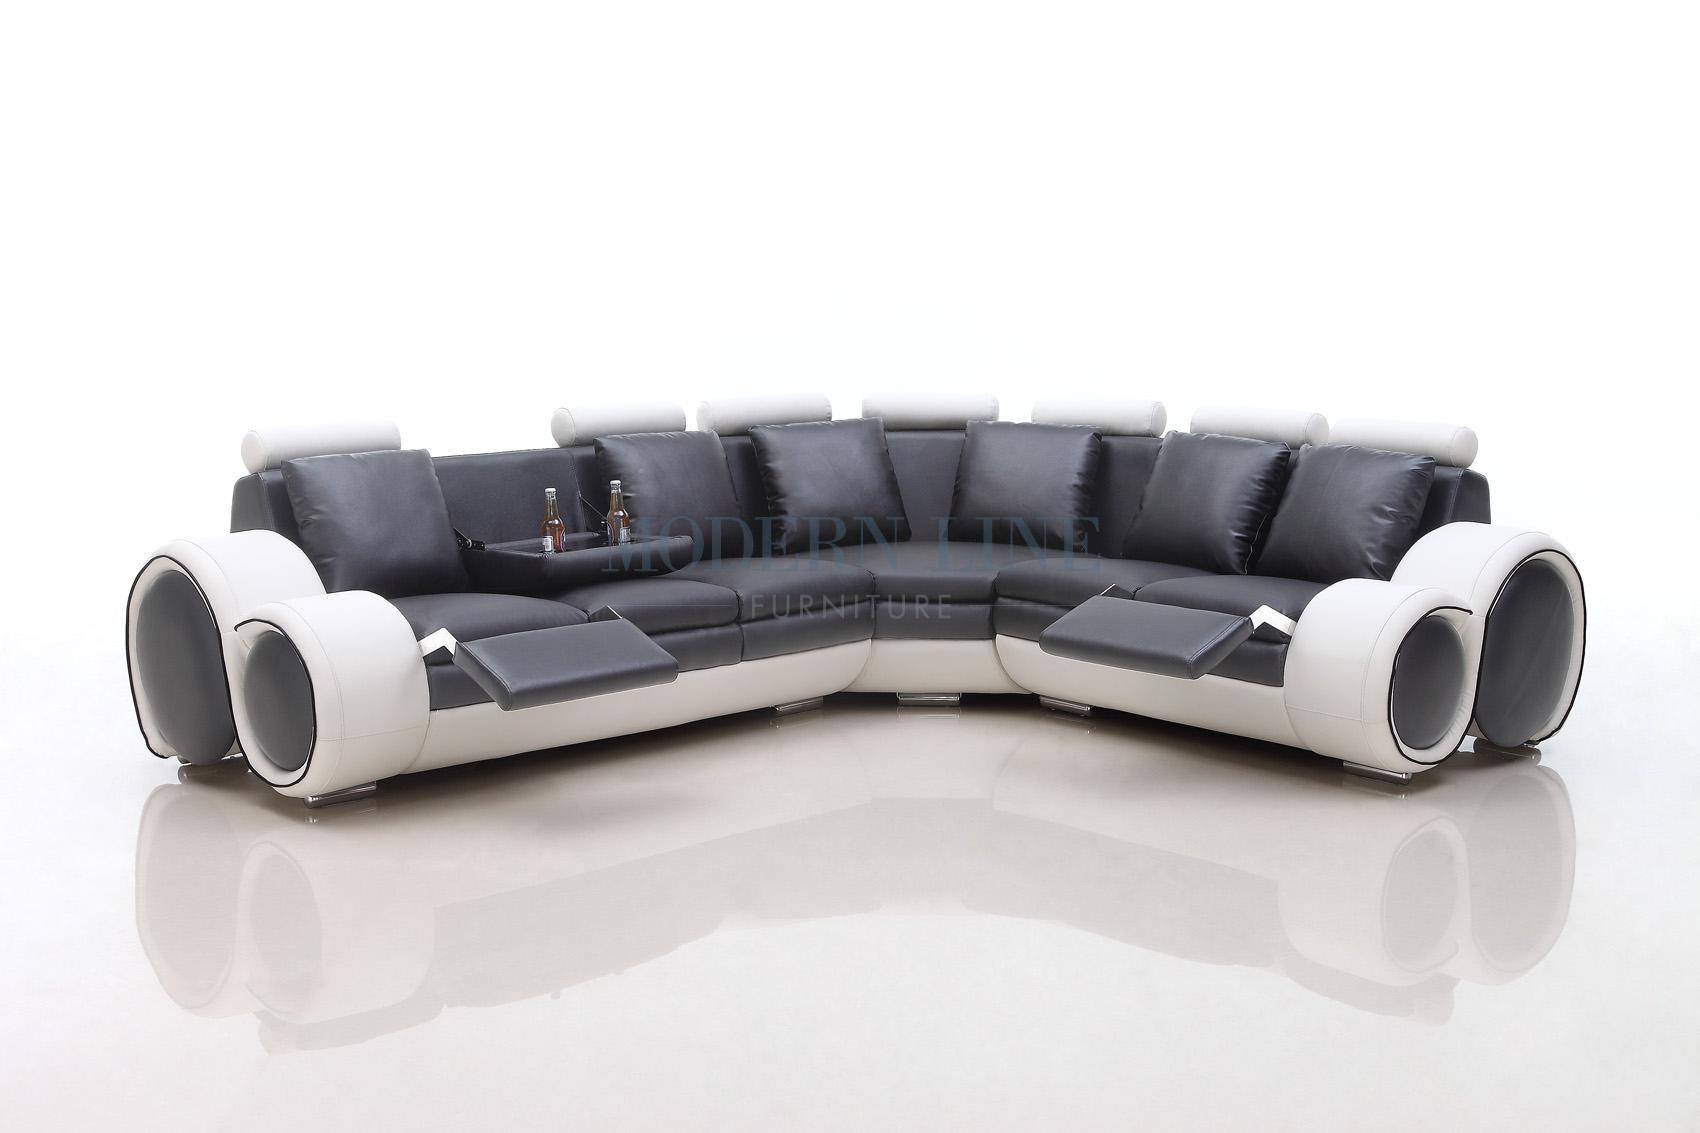 Modern Line Furniture – Commercial Furniture – Custom Made Intended For Sofas With Console (View 15 of 20)